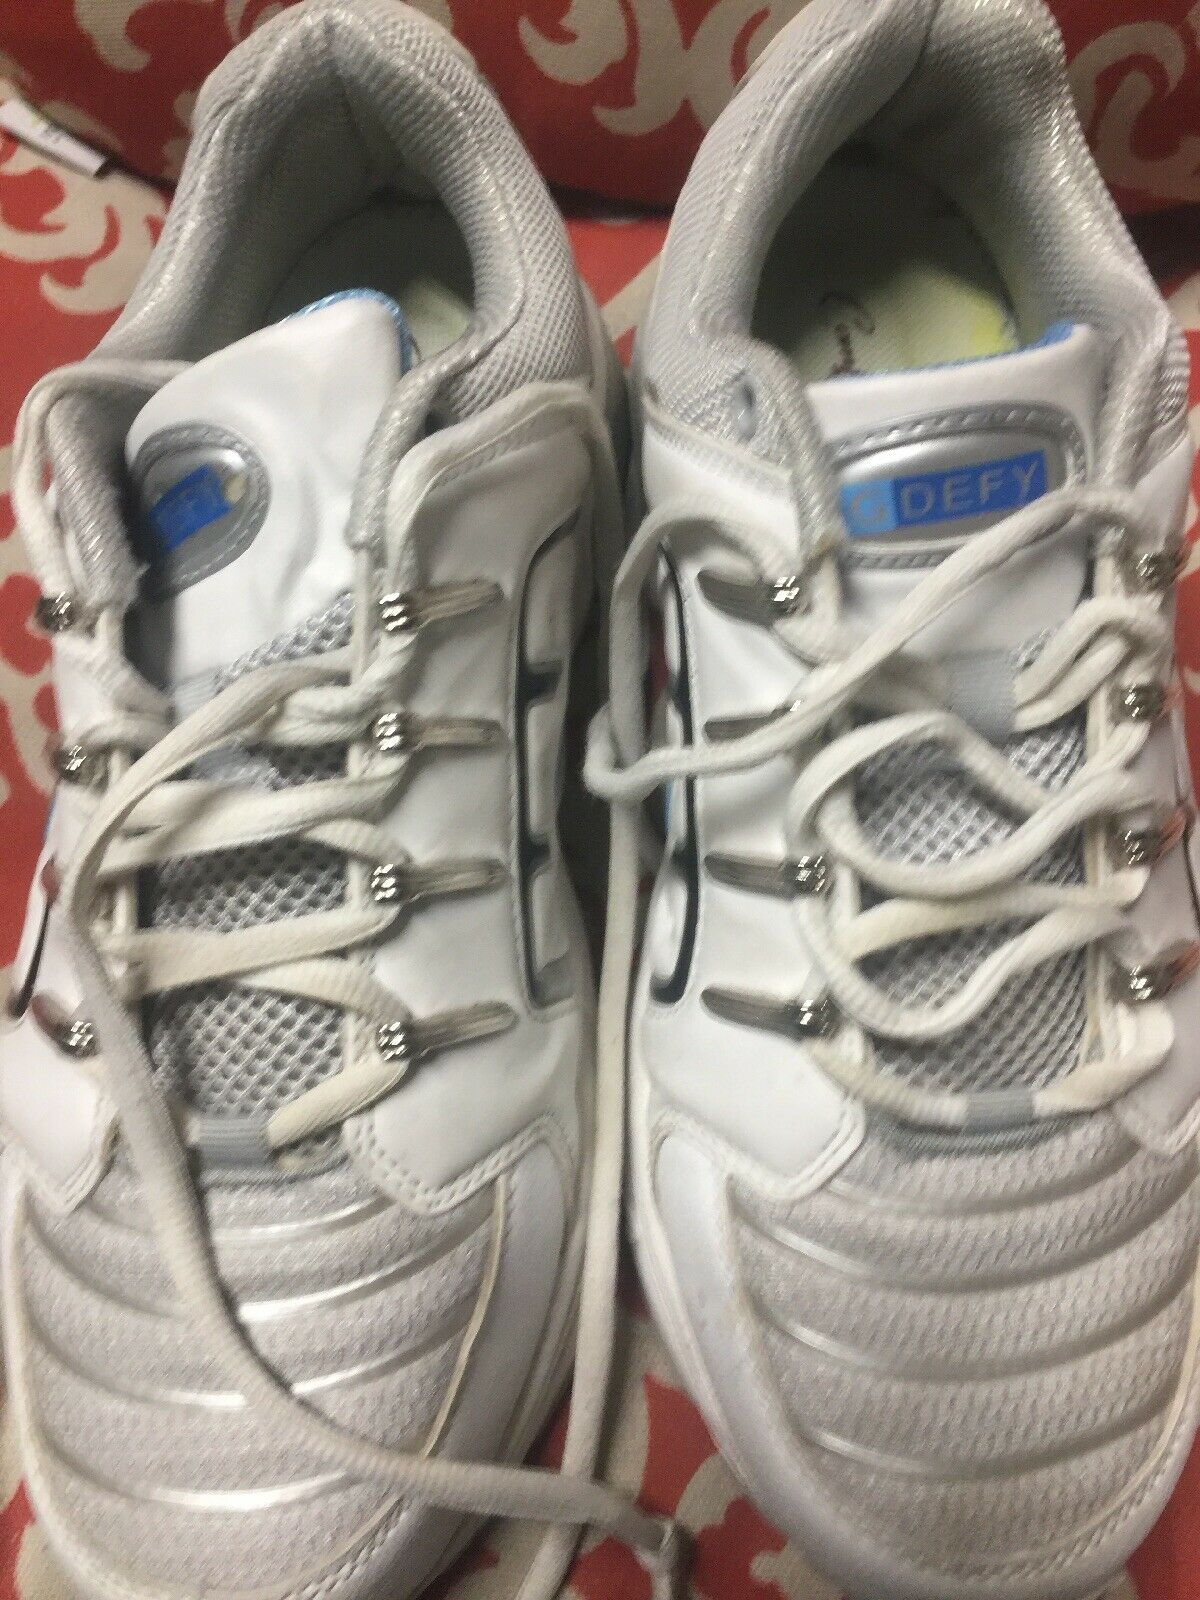 G Defy Mens Sport shoes Comfort Fit Three Spring System Size 8.5 White Leather